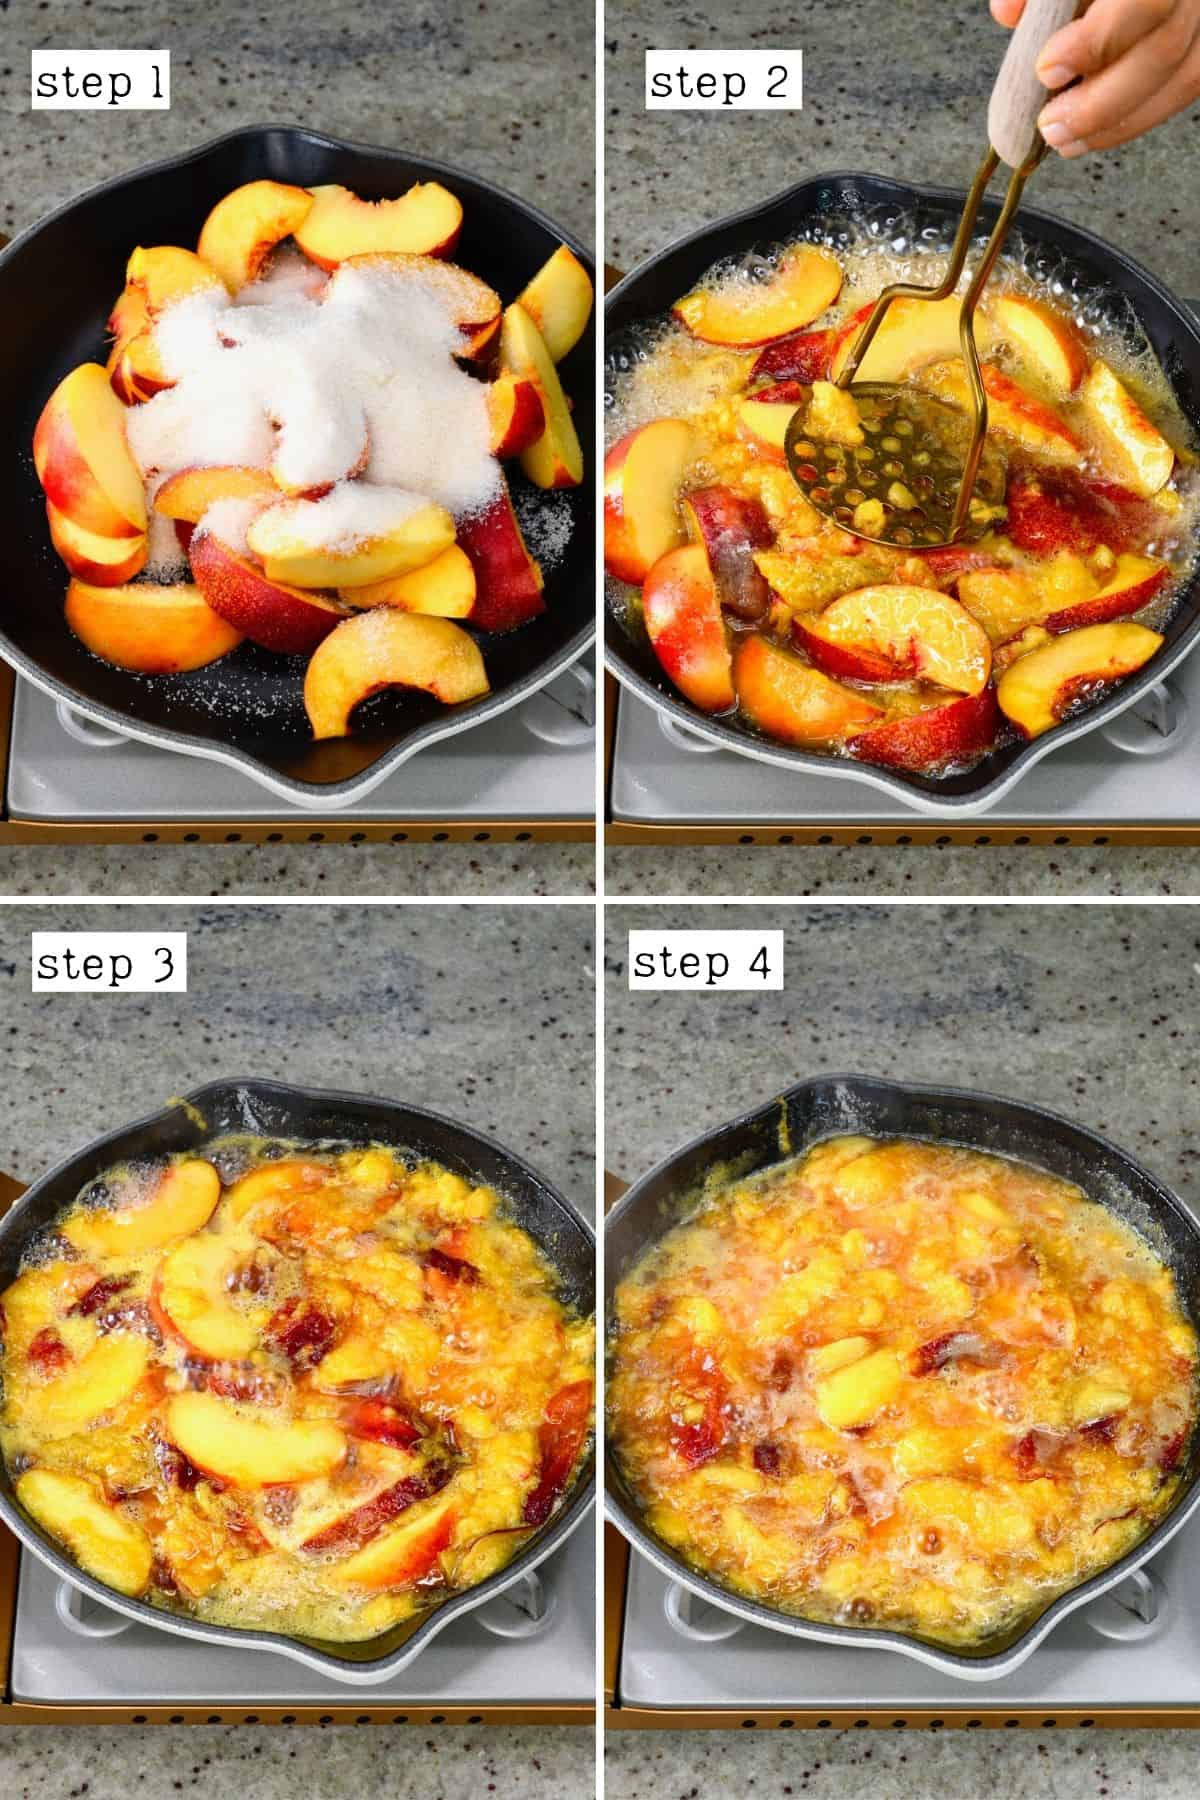 Steps for making peach syrup